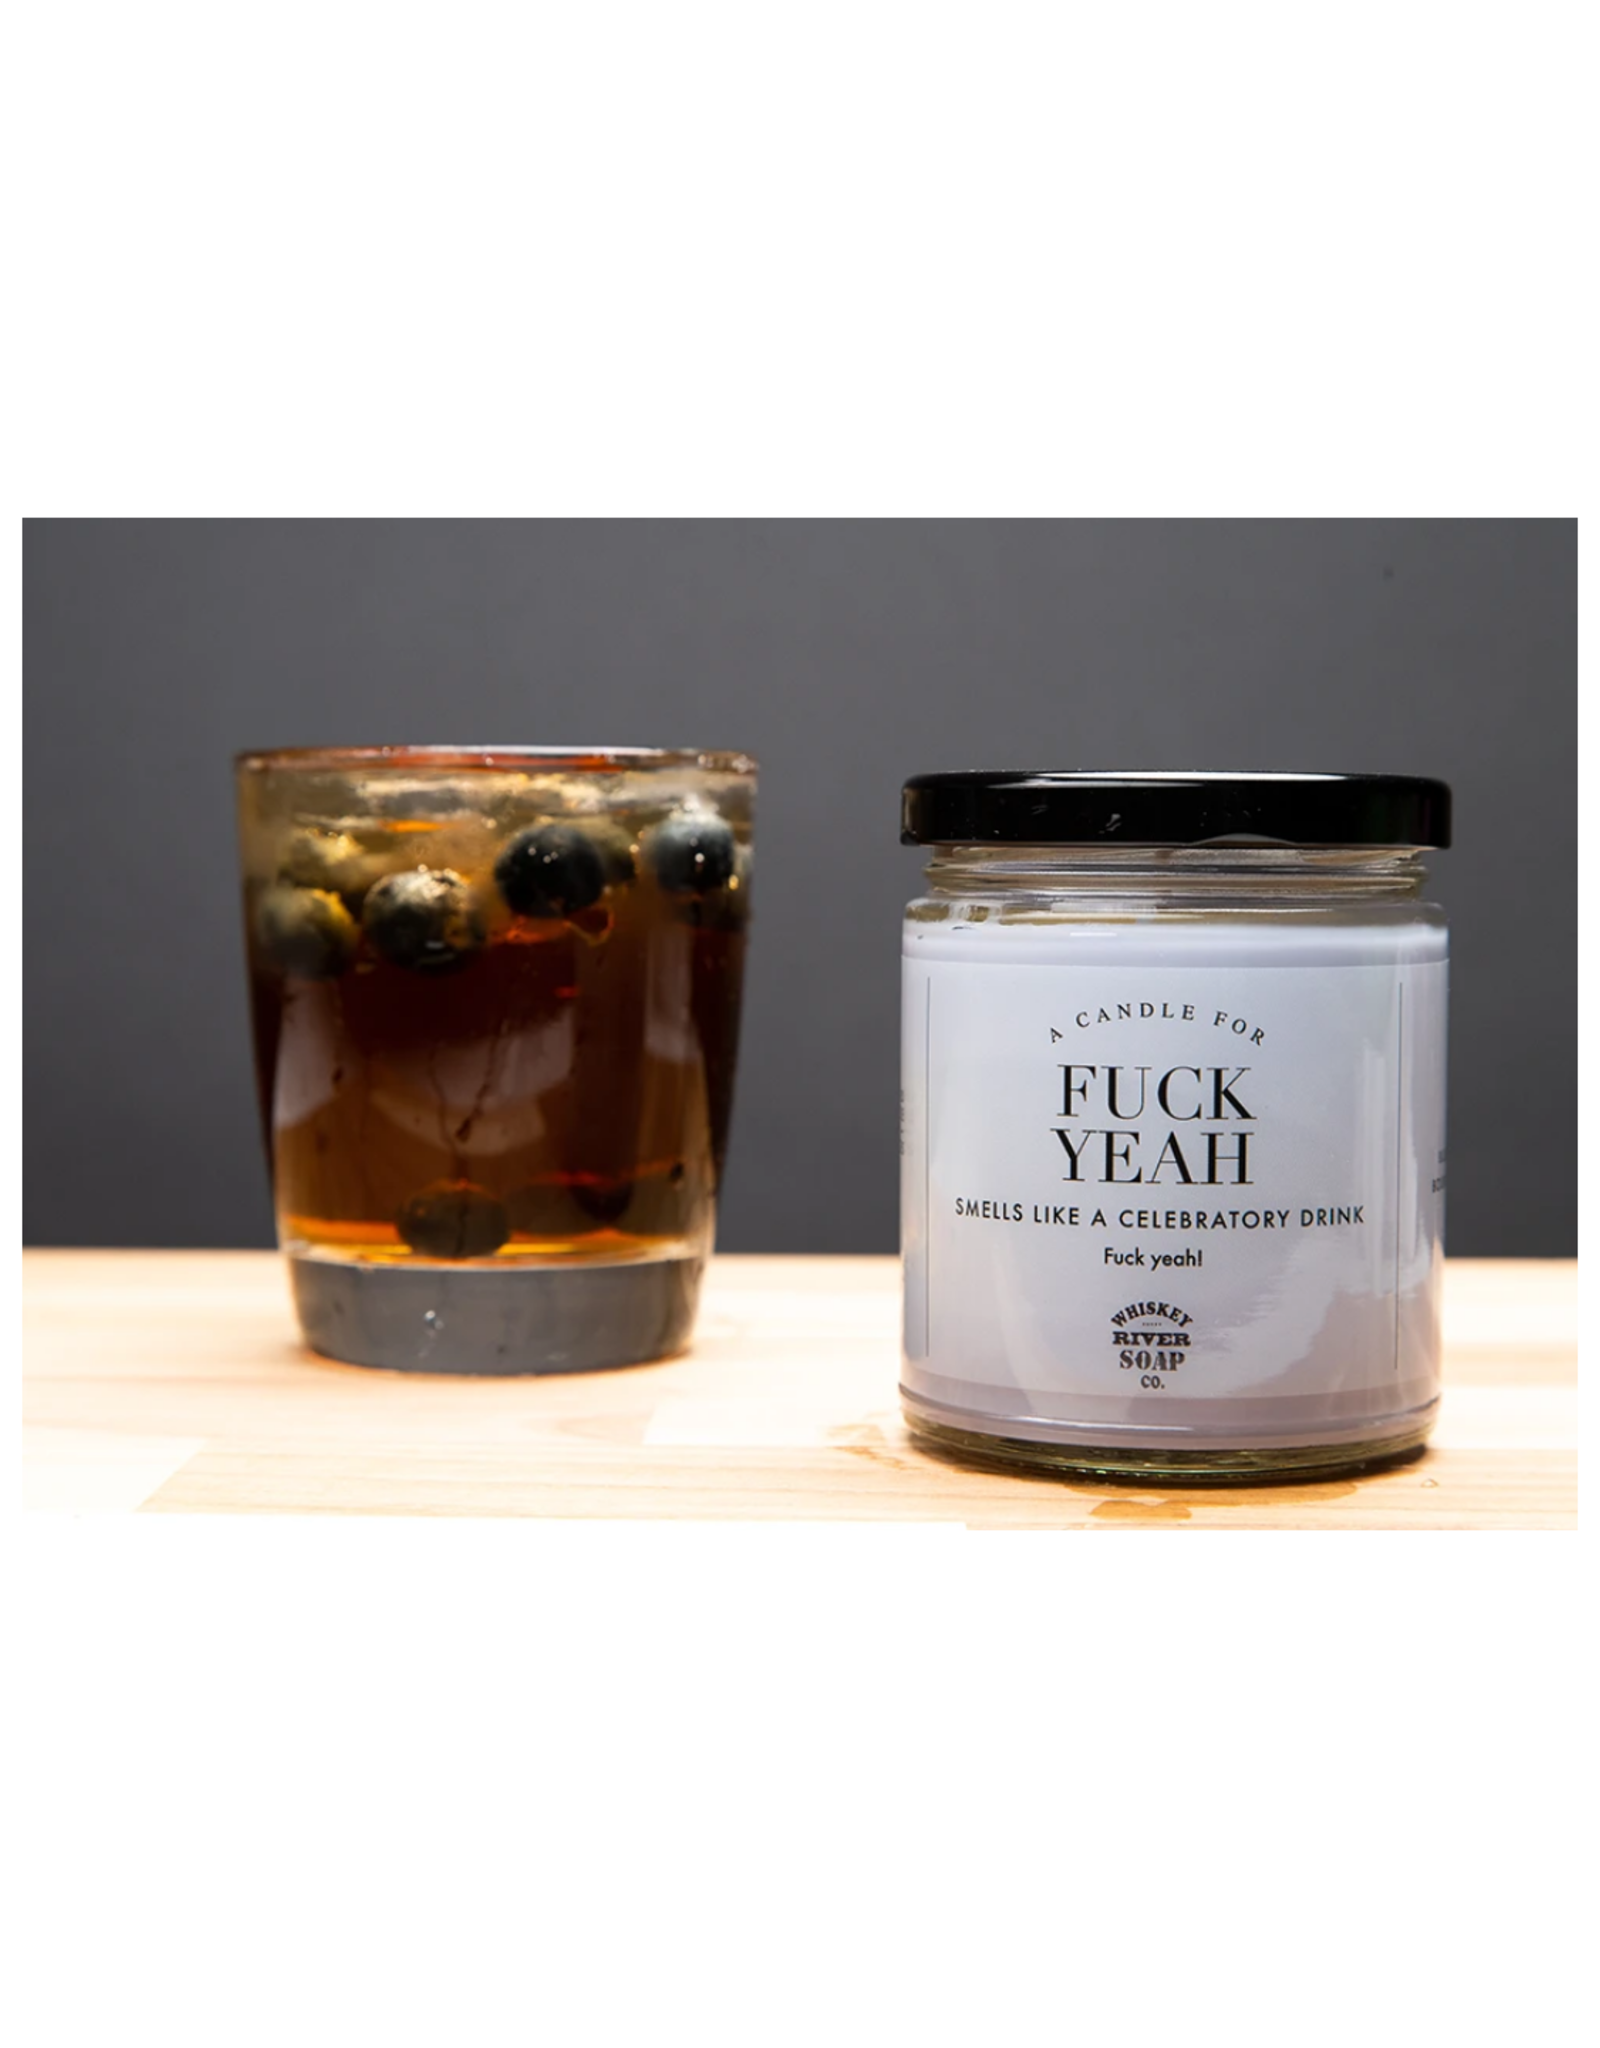 A Candle For Fuck Yeah